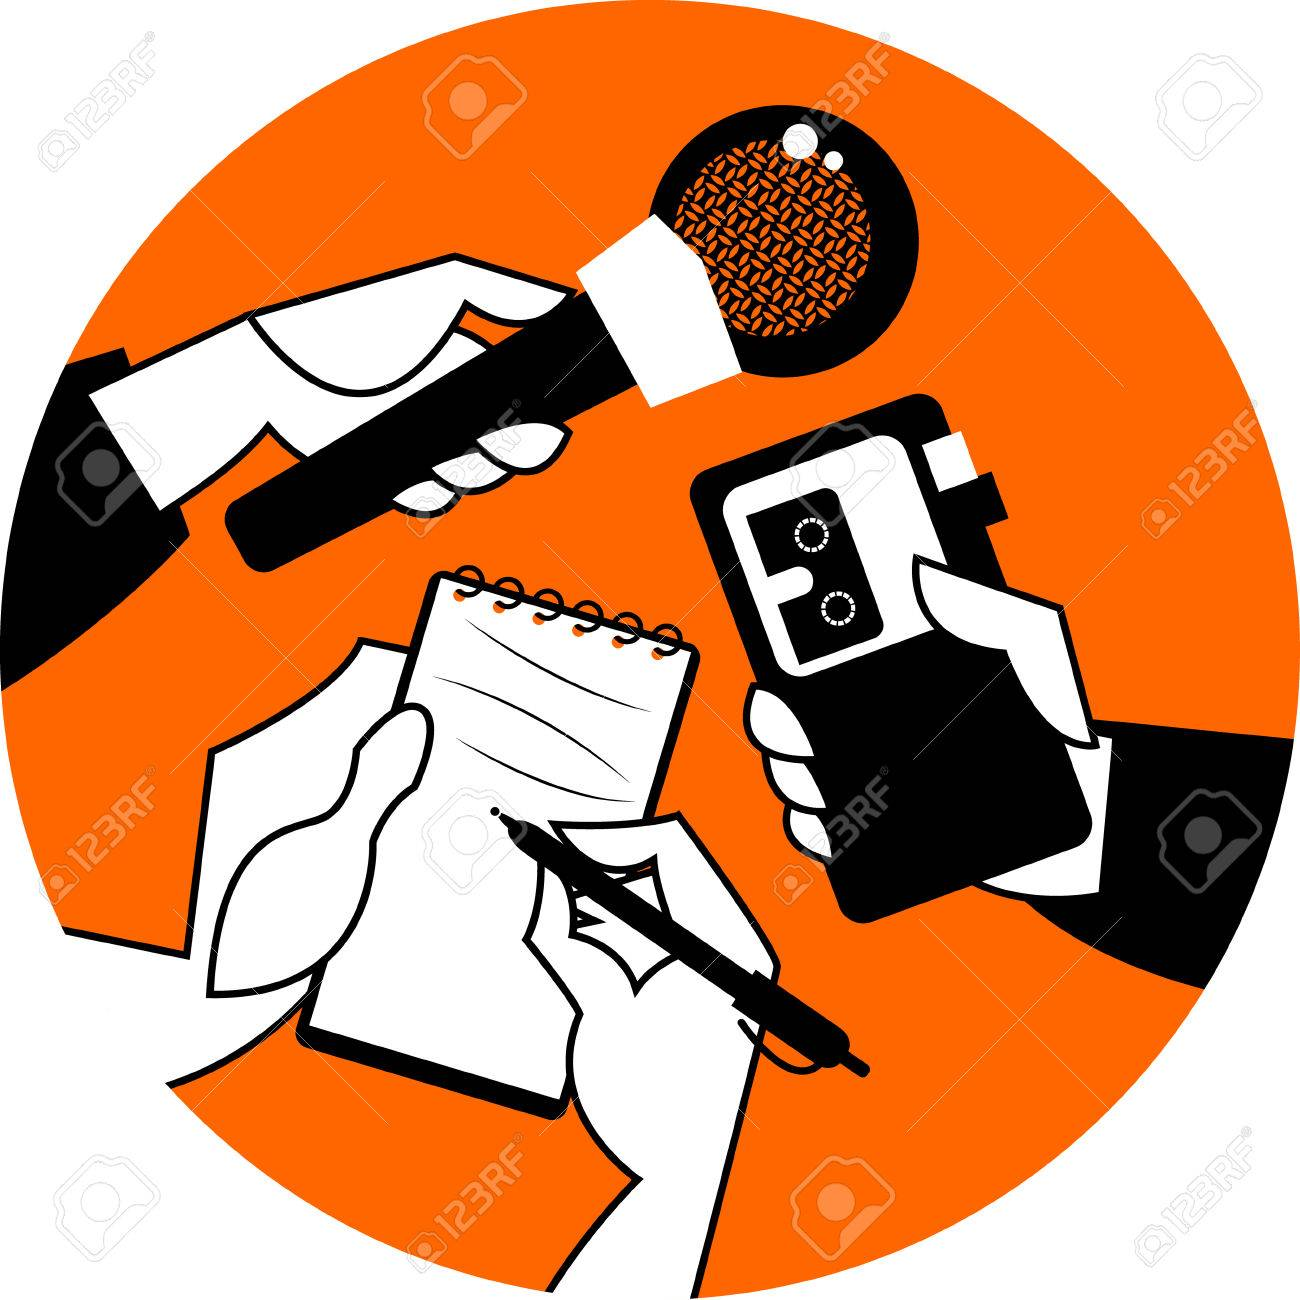 Set of hands holding microphone, voice recorder and spiral notebook. Journalism concept. Vector illustration - 45278794